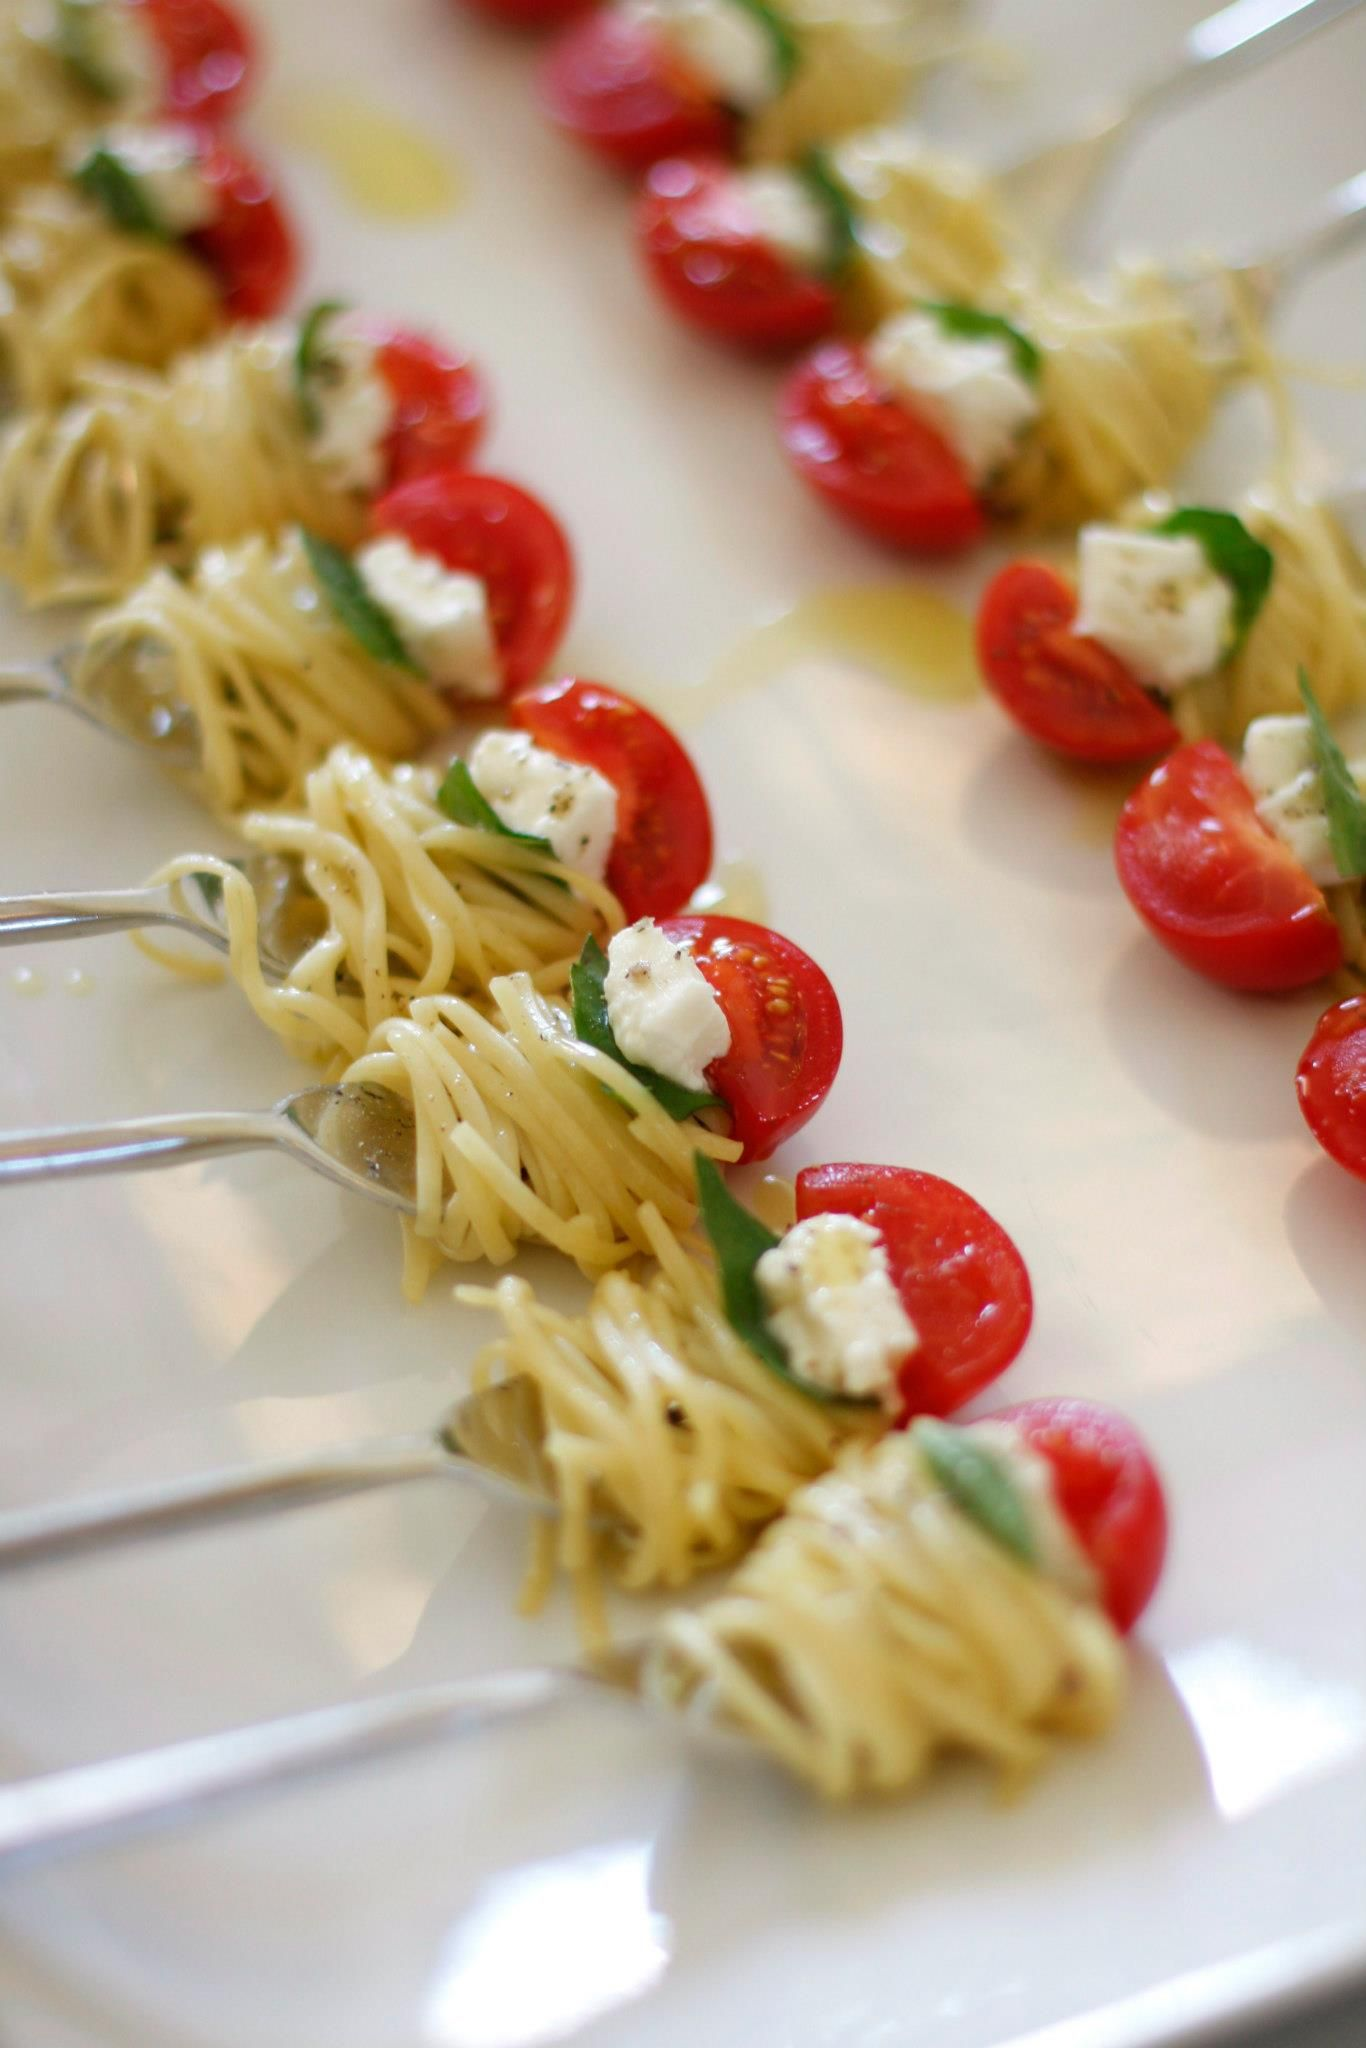 Fingerfood Kind Appetizer Fun One Bite Of Pasta The Perfect Bite